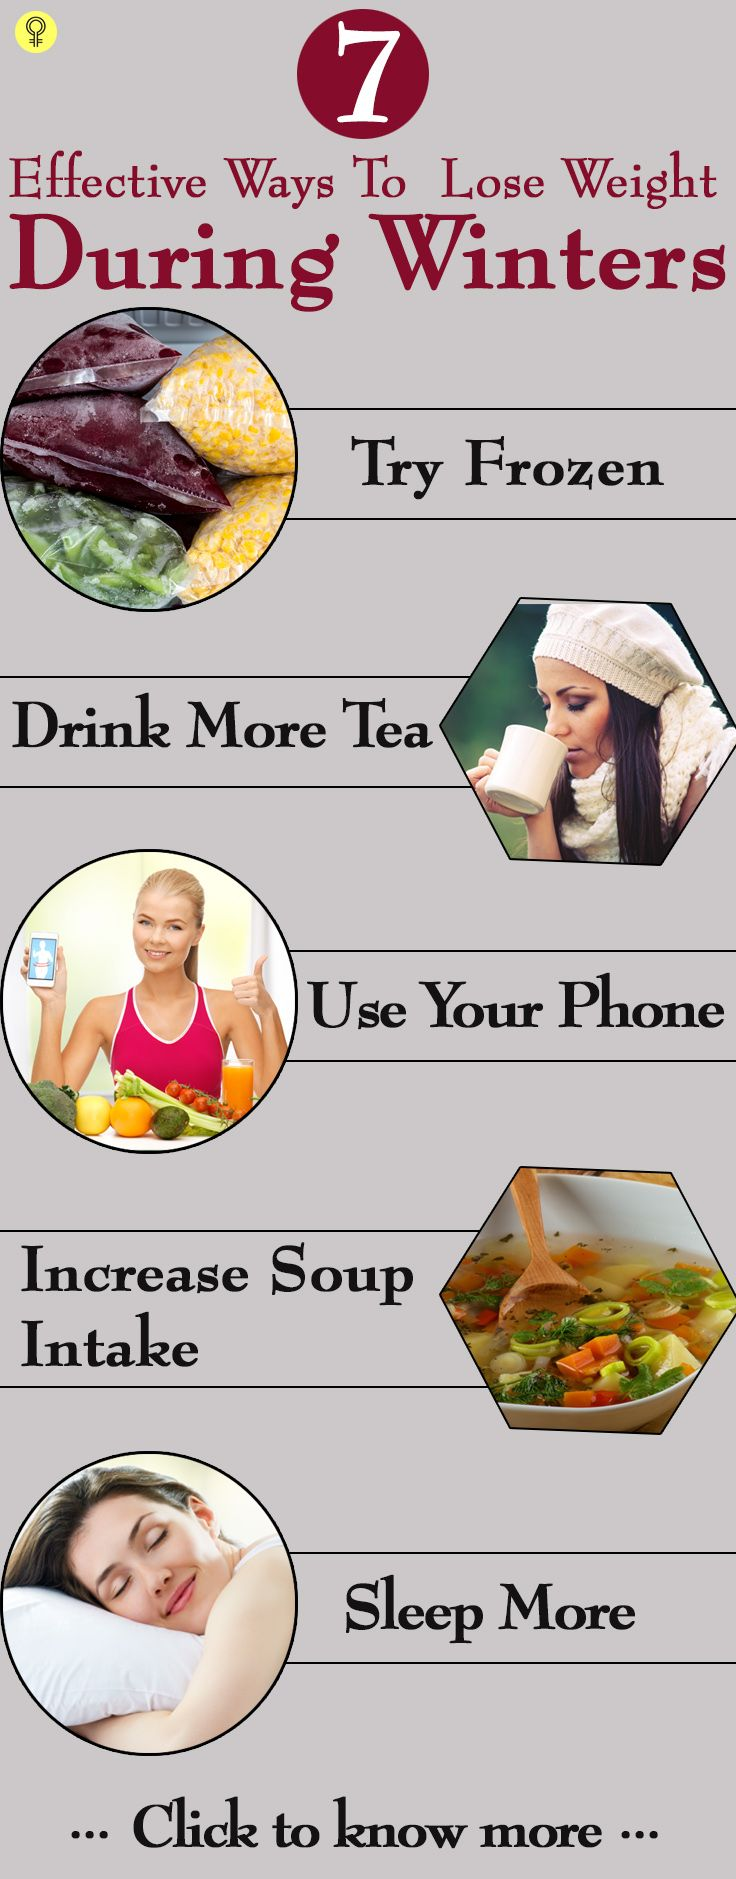 7 Effective Ways To Lose Weight During Winters : The good news is that there are...